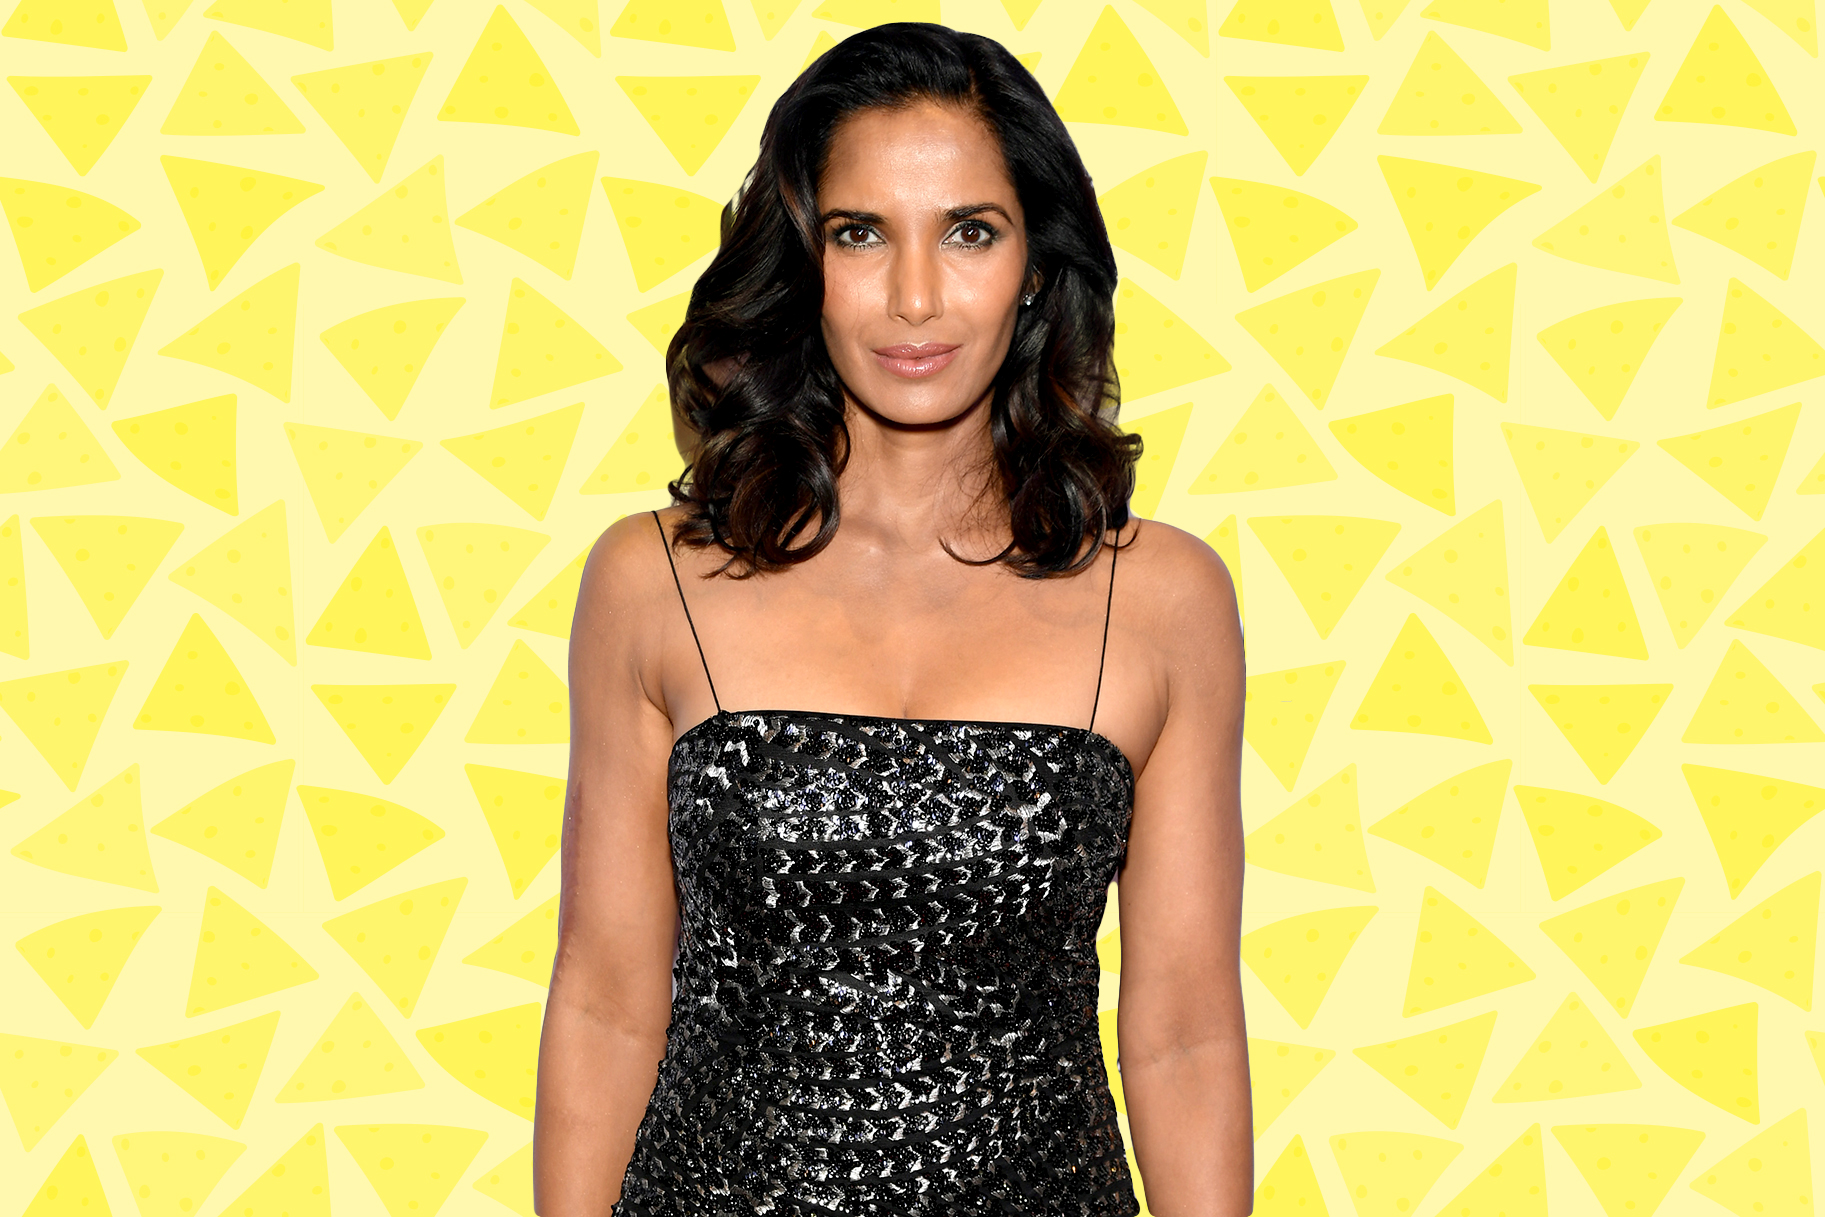 The Feast Padma Lakshmi